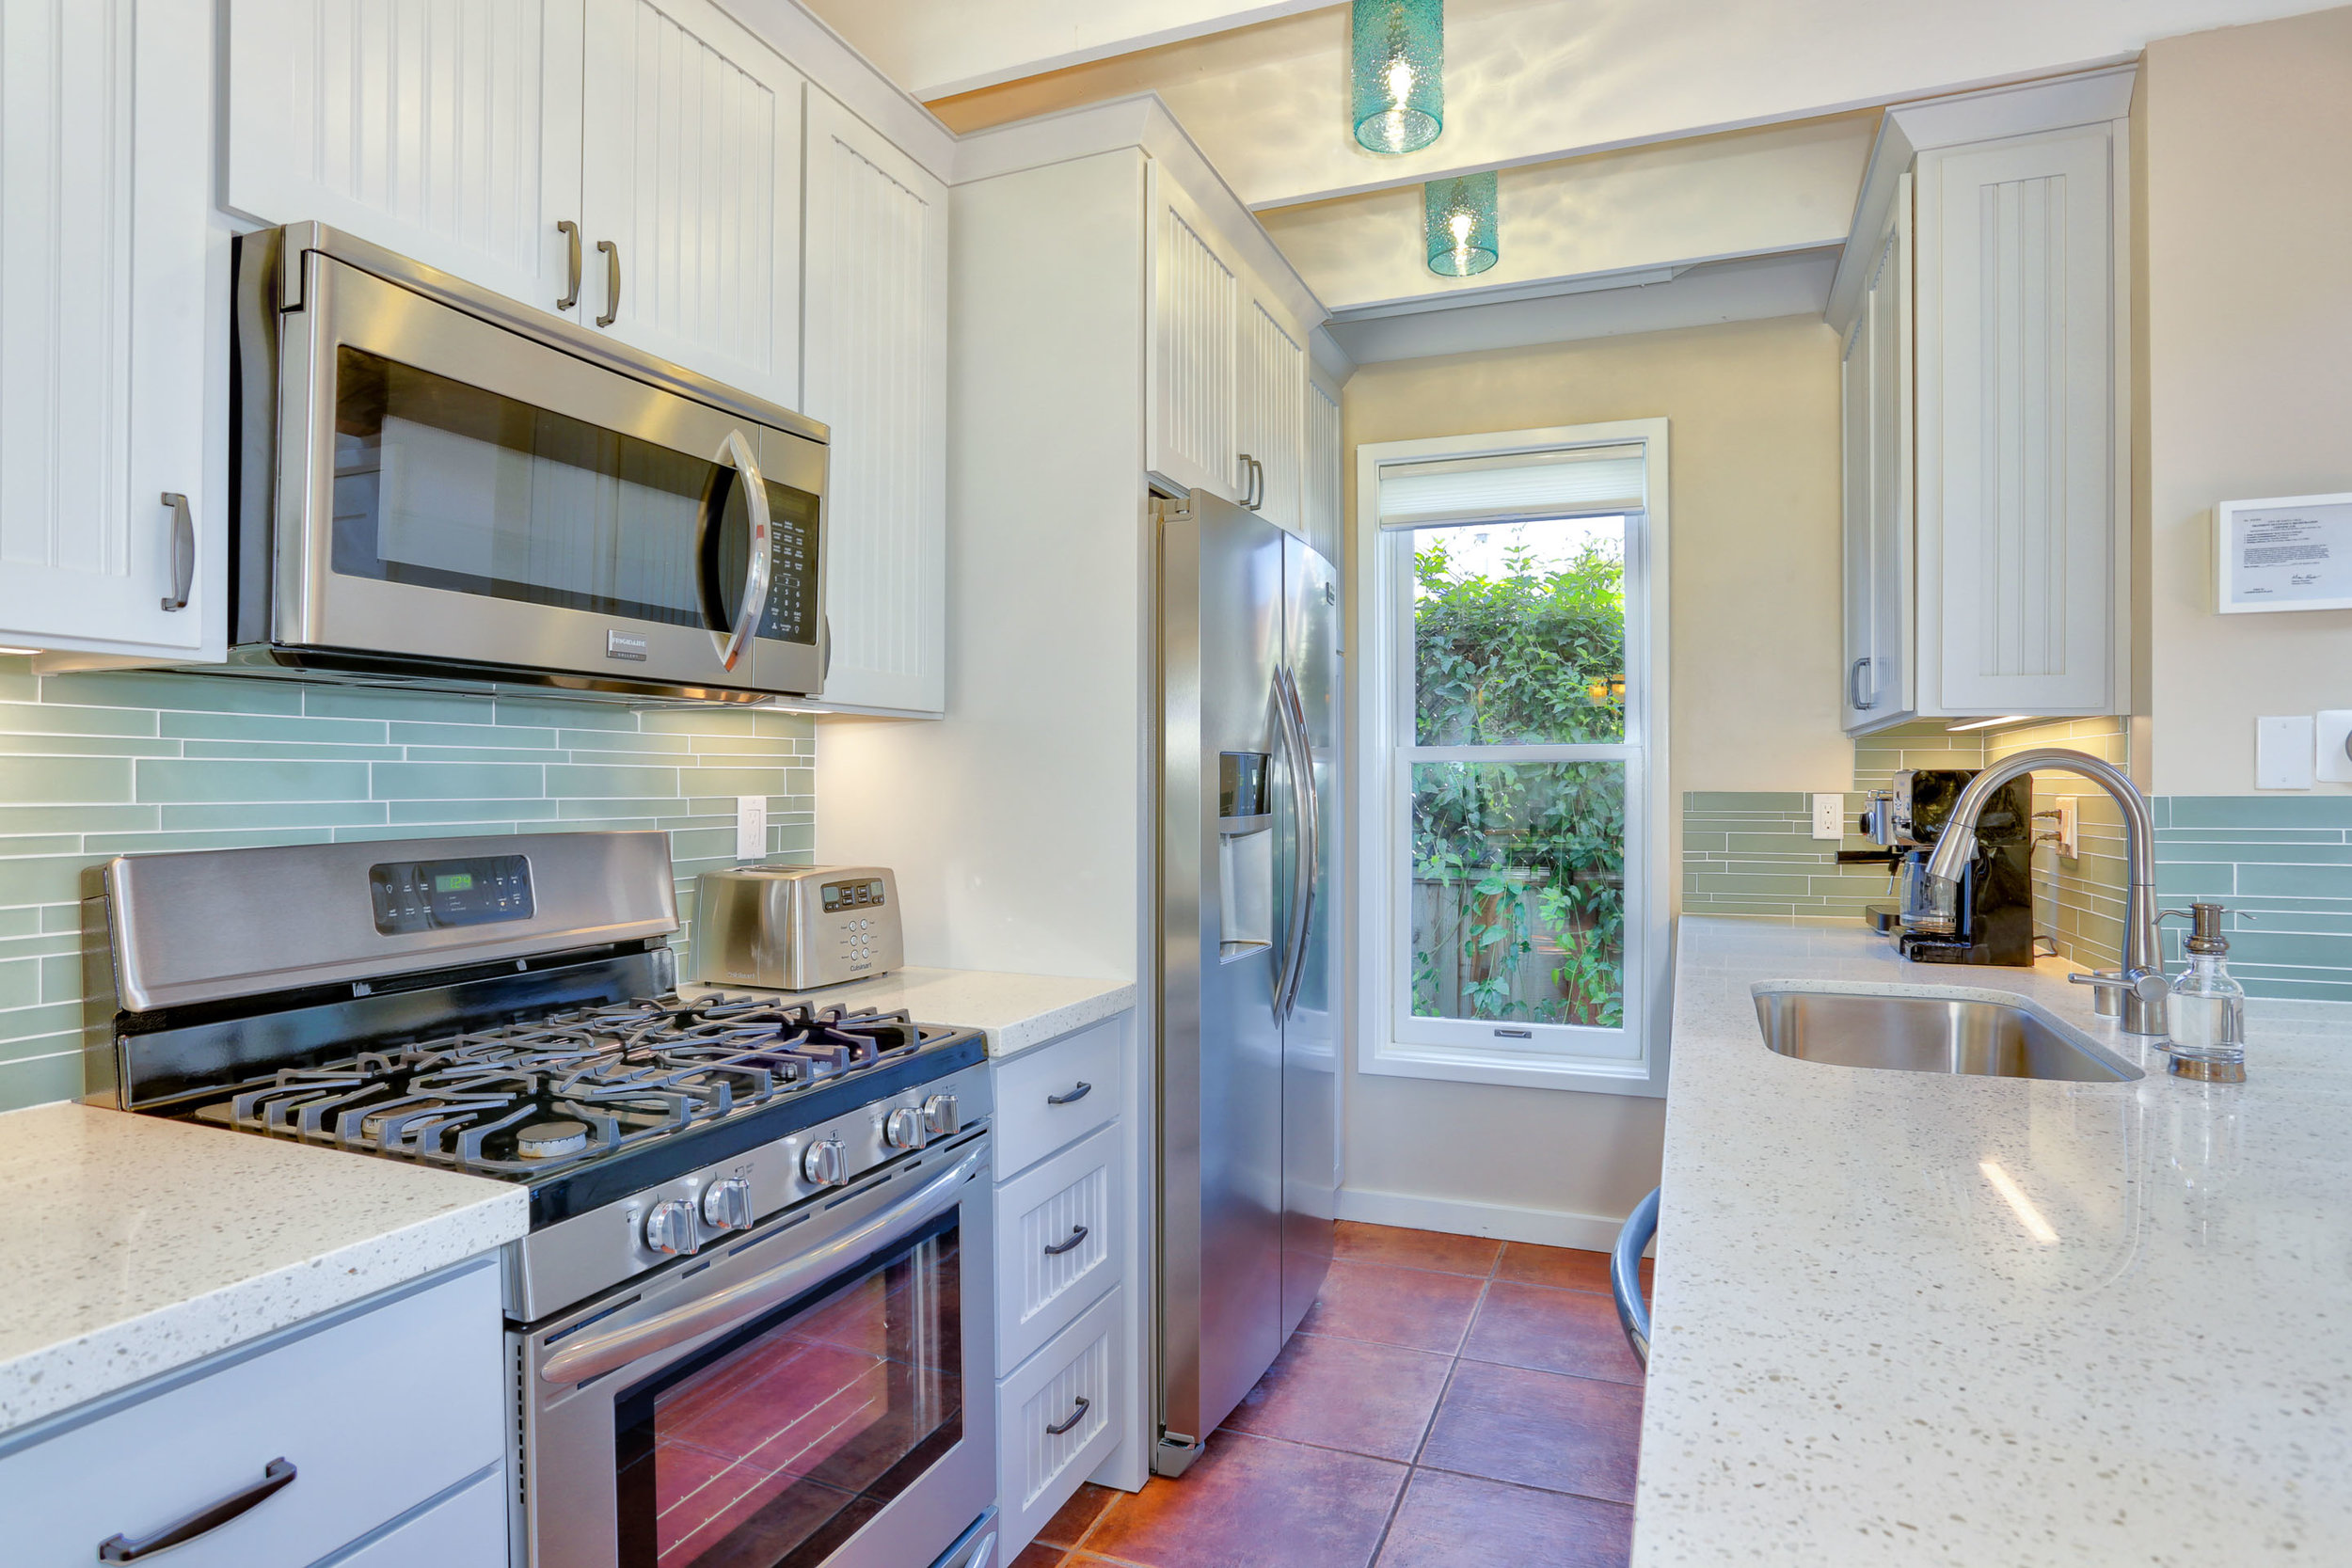 NEW: Brand new kitchen also includes coastal blue back splash to complete the beach house look.